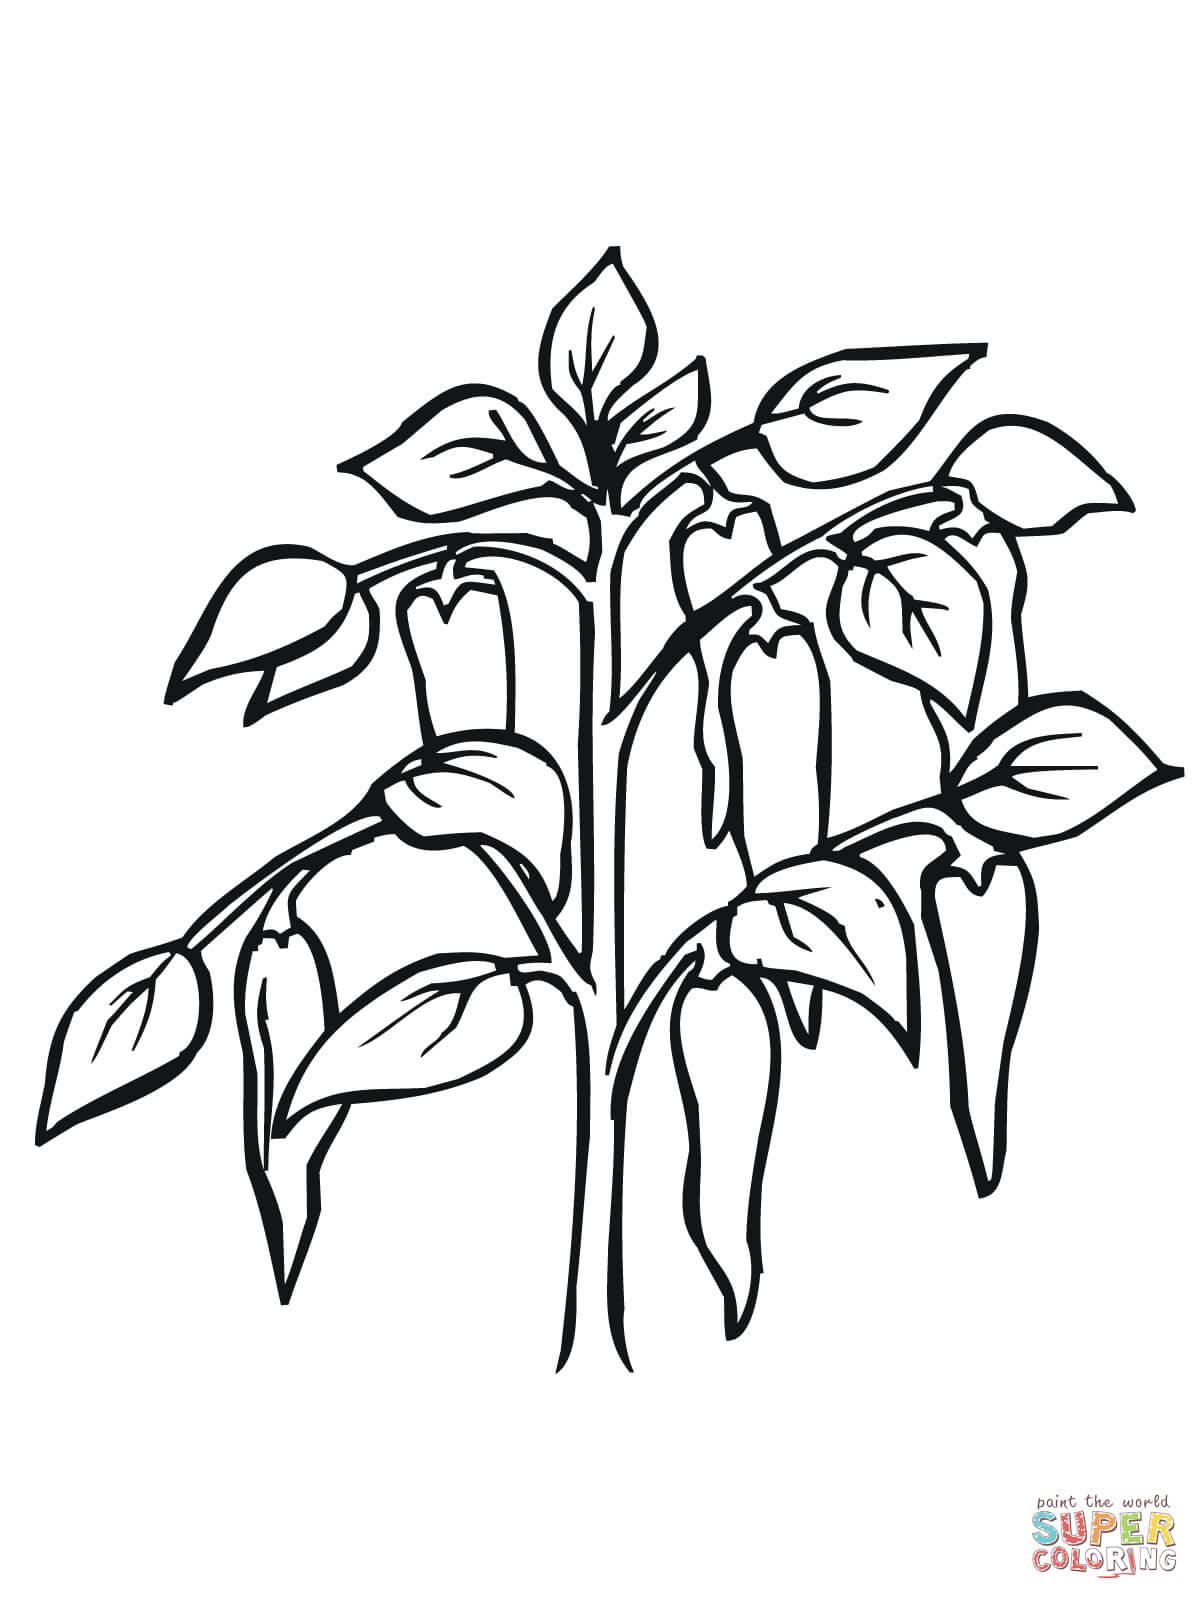 Chili Pepper Plant Coloring Page